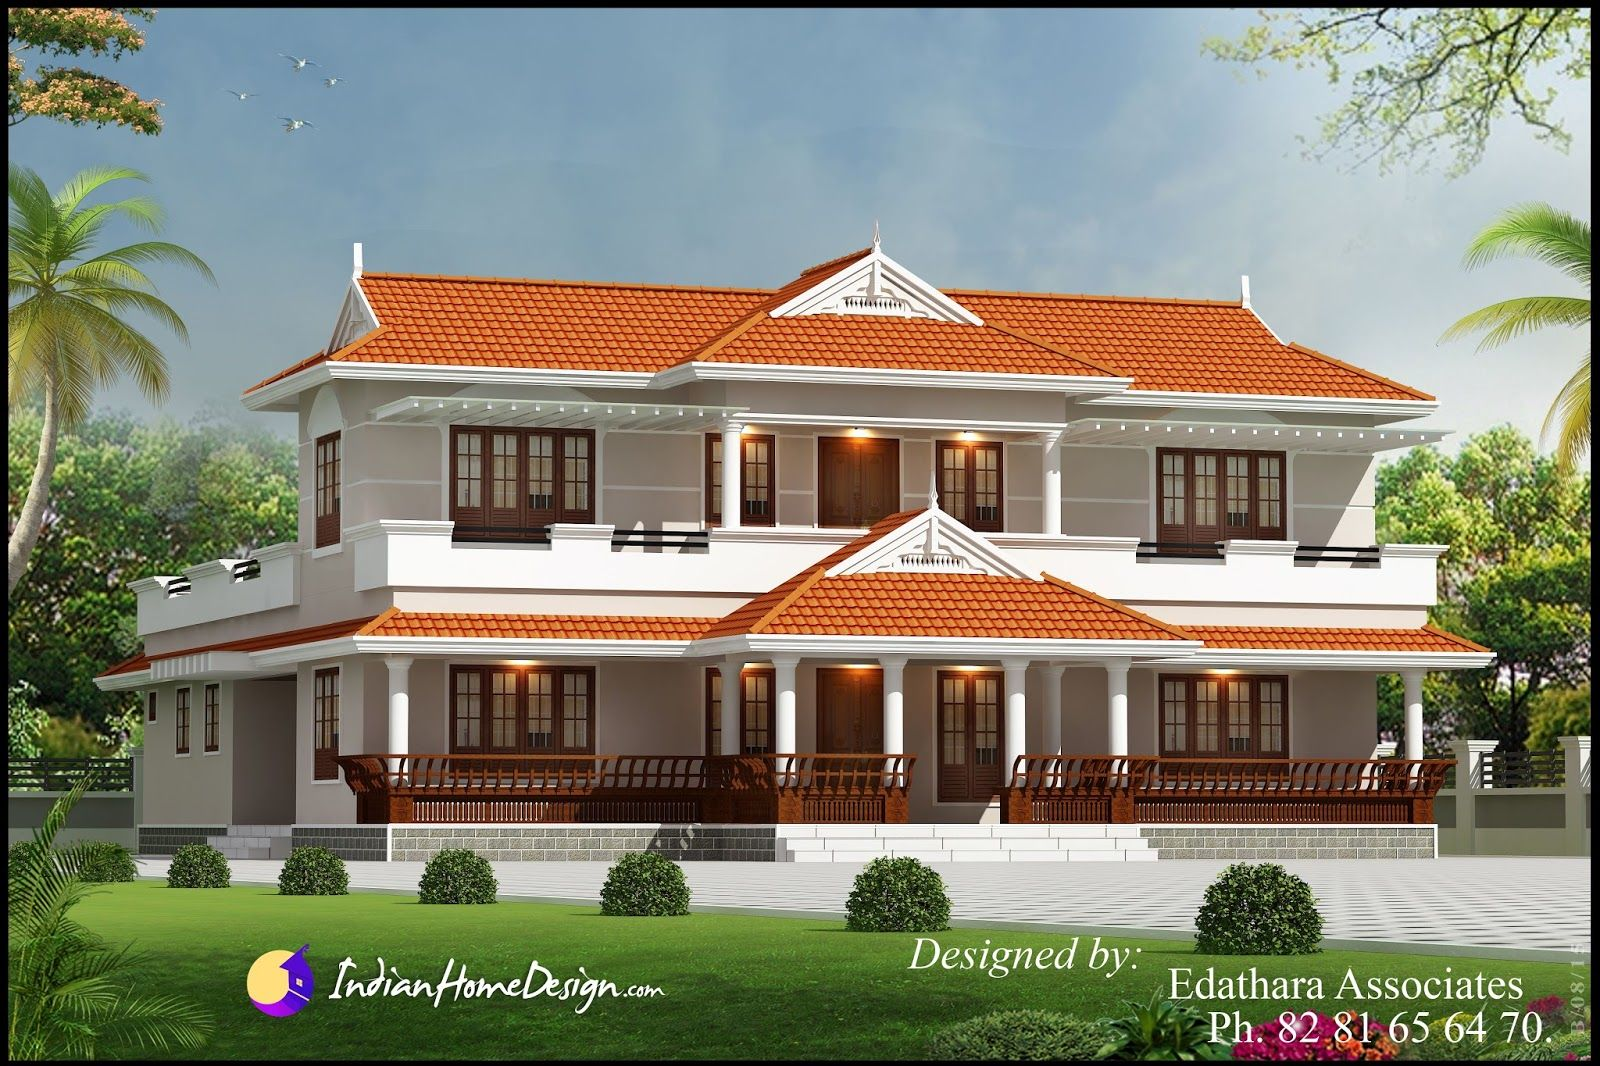 Kerala Style 2288 Sqft Villa Design Traditional Double Floor Kerala Home Design Indian Craftsman Style House Plans Village House Design House Balcony Design